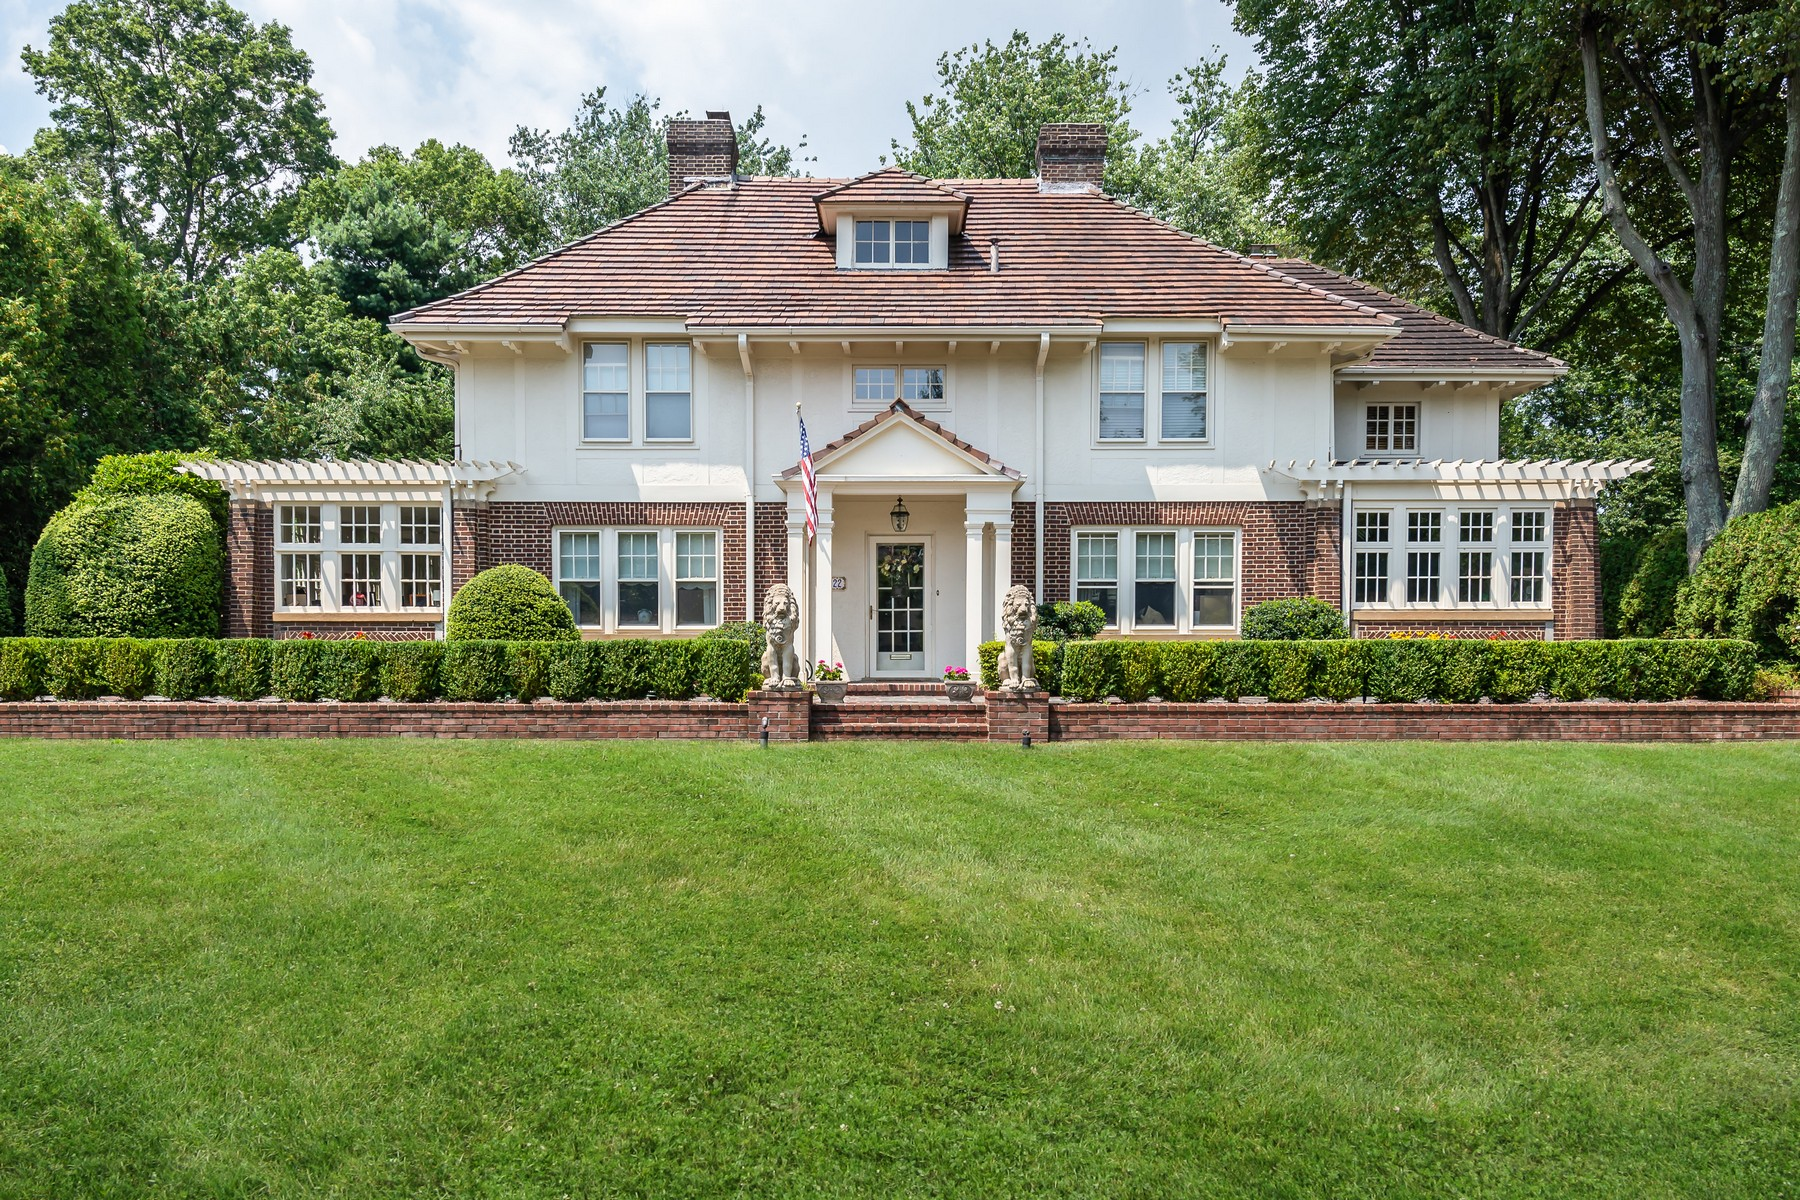 Single Family Homes for Active at Garden City 22 Westbury Rd Garden City, New York 11530 United States